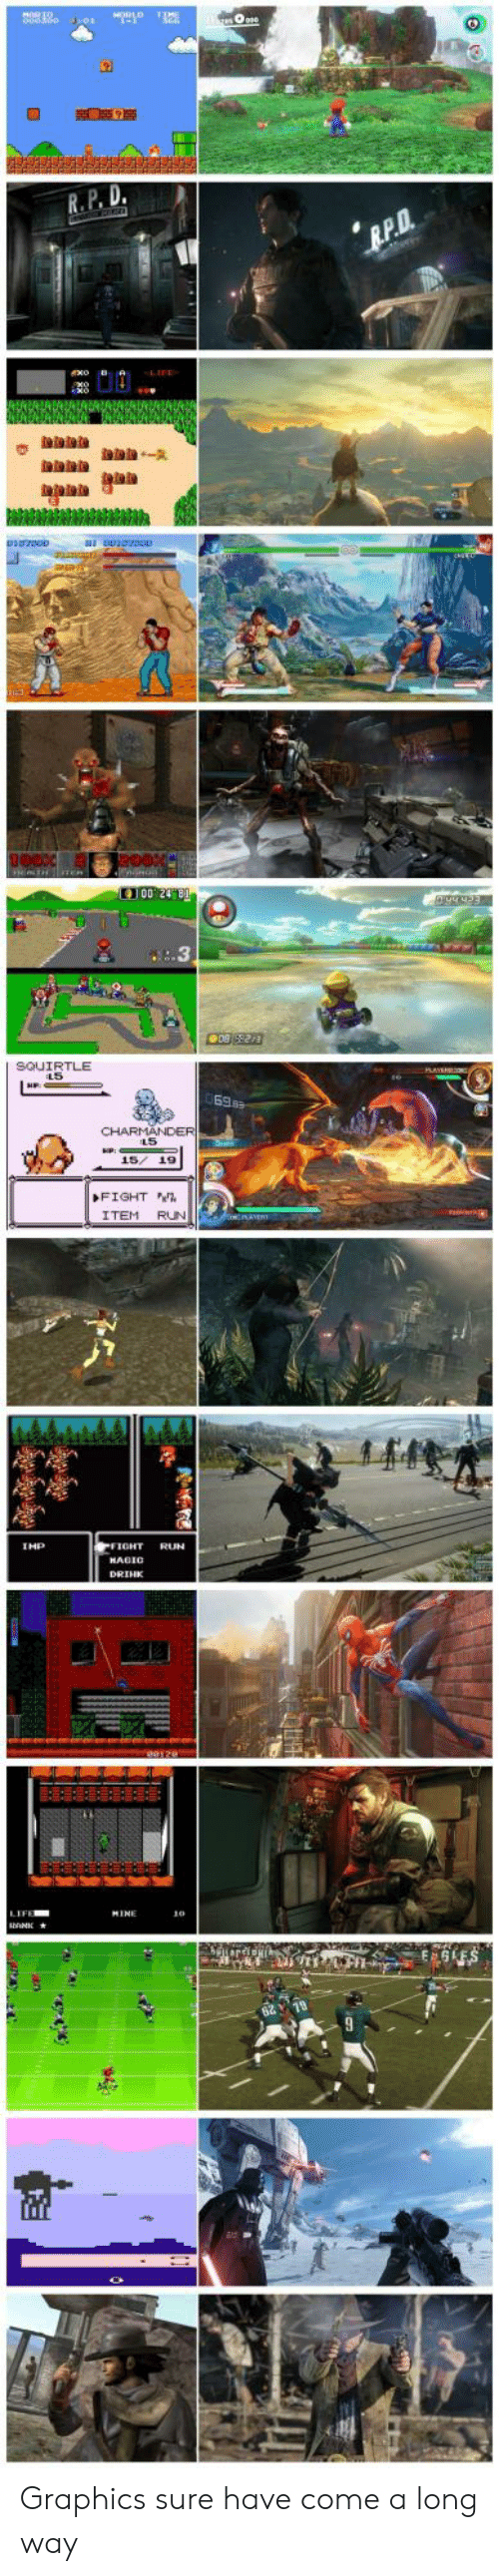 Run, Fight, and P & D: R.P. D  100 248  SQUIRTLE  FIGHT  ITEM RUN  IHP  IFE Graphics sure have come a long way